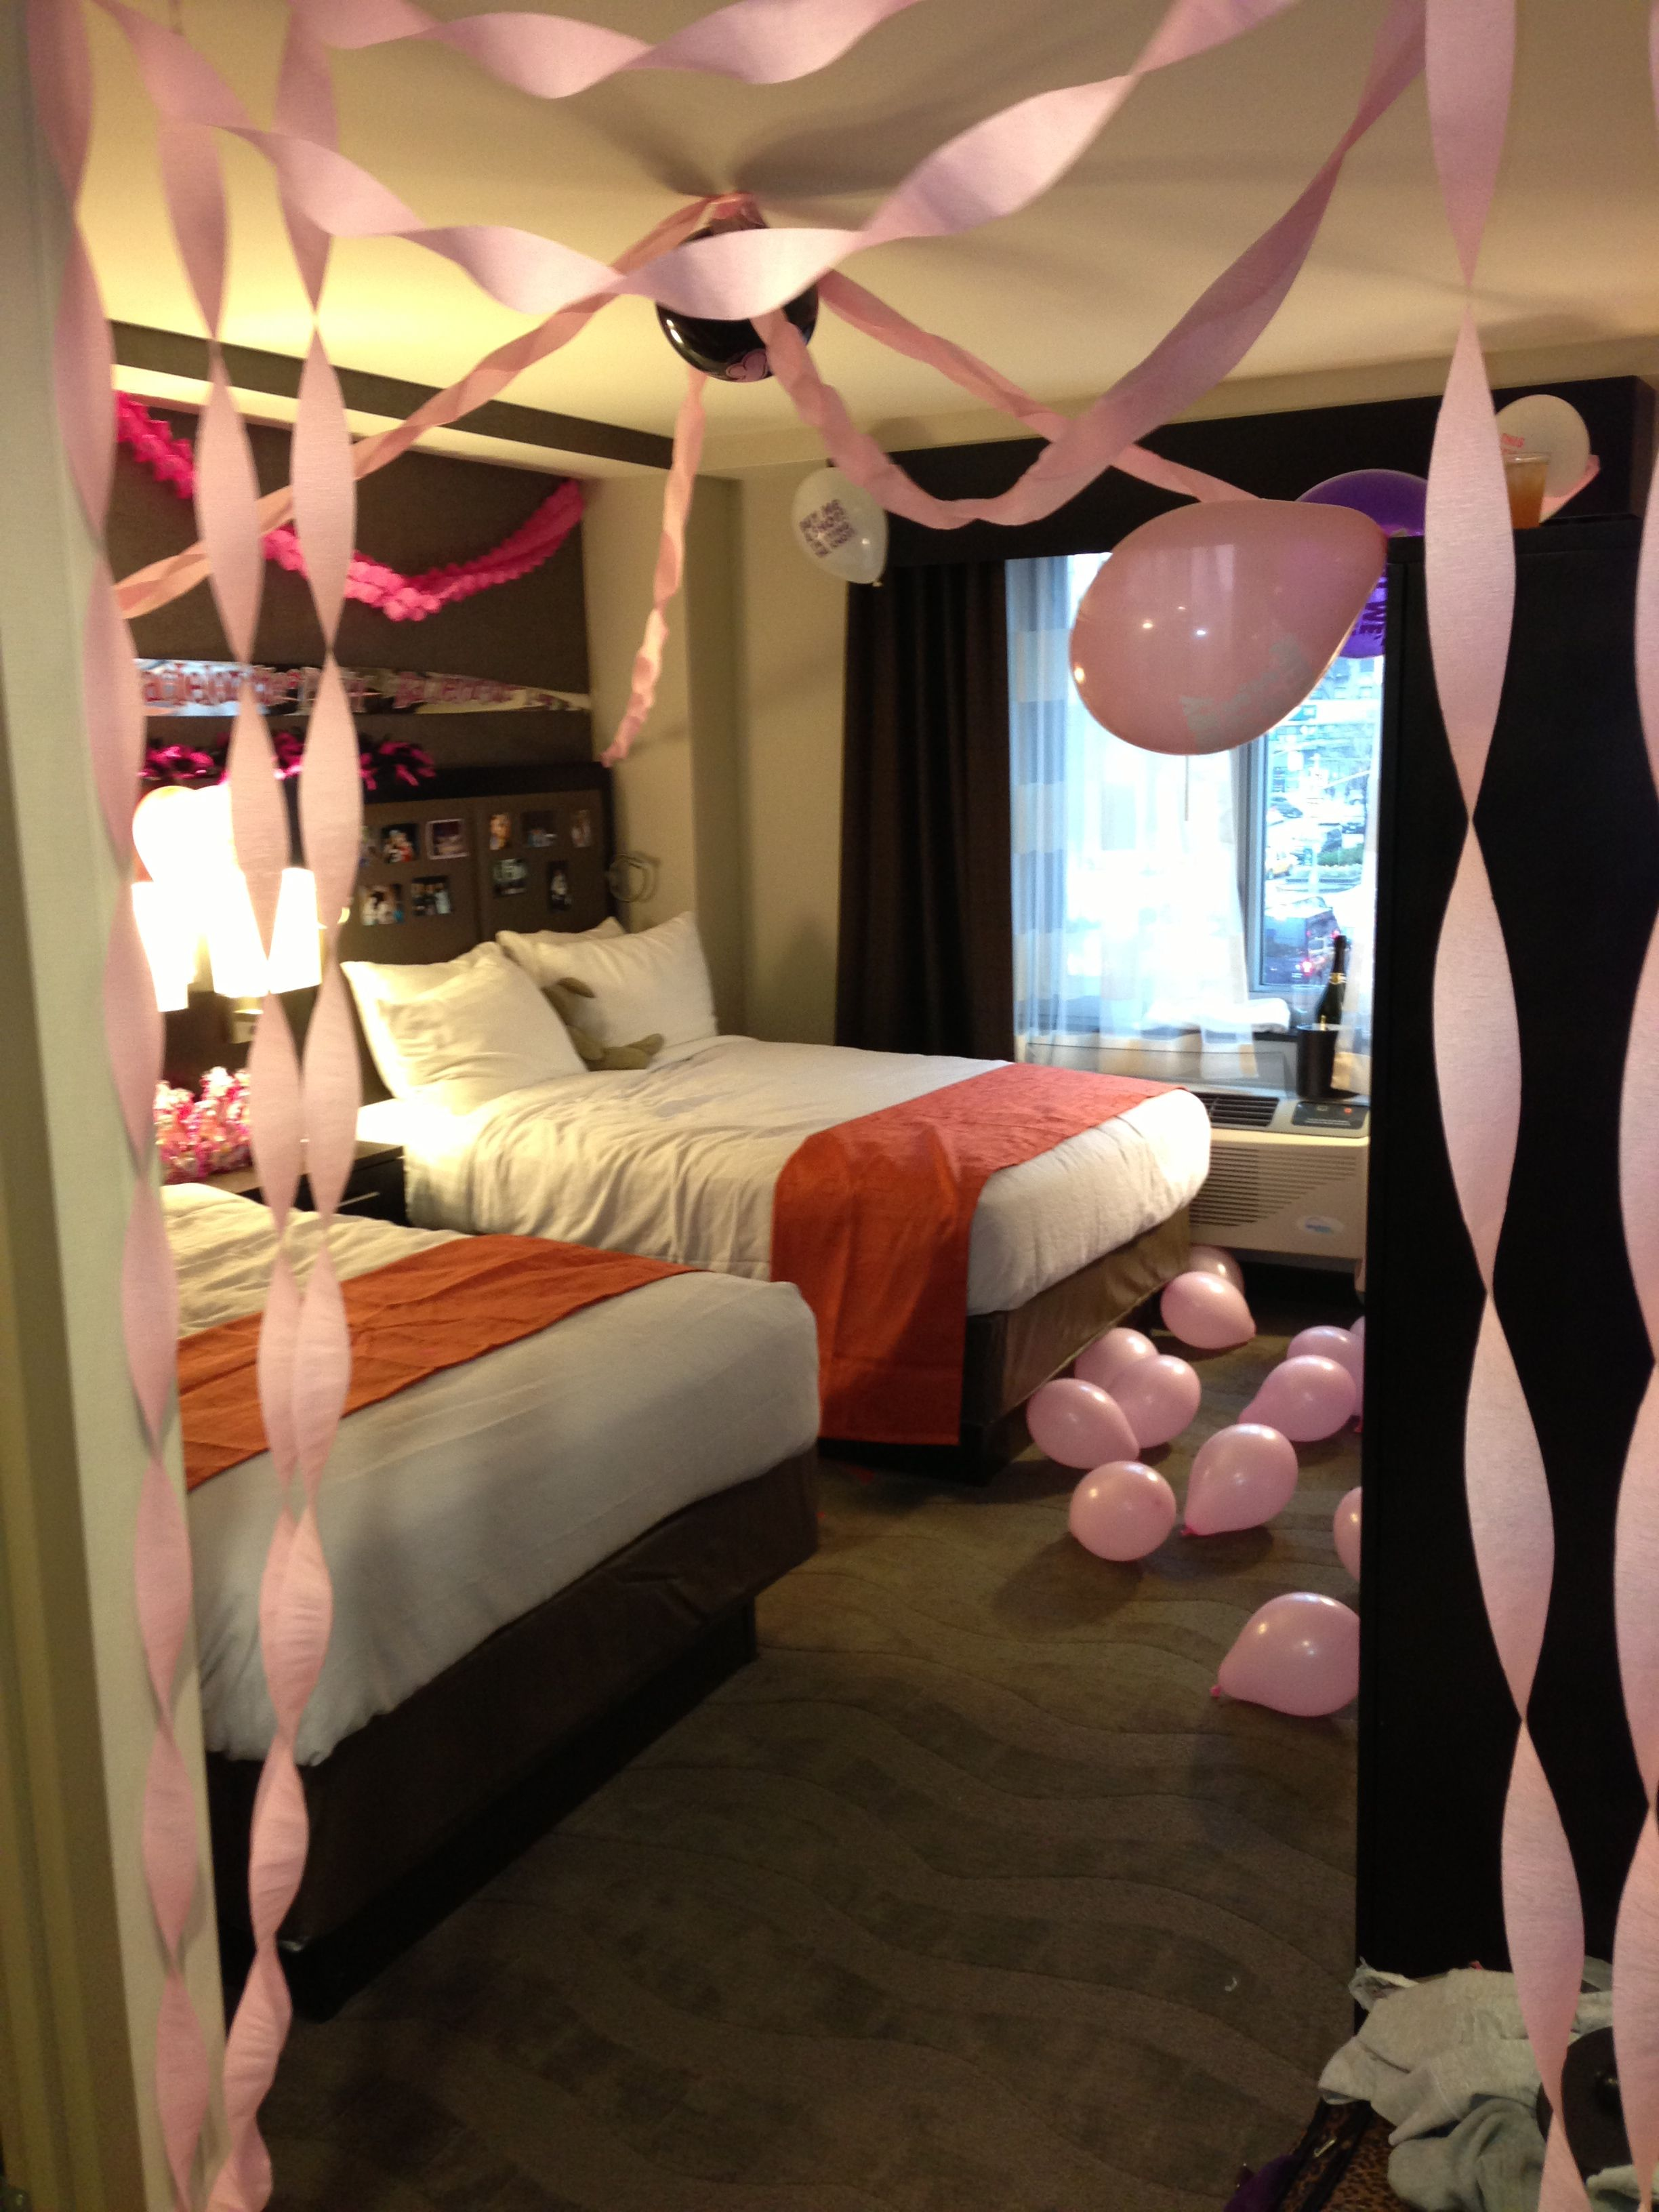 Pin By Dominique Mc Clashie On Party Ideas Creative Bachelorette Party Hotel Sleepover Party Hotel Birthday Parties